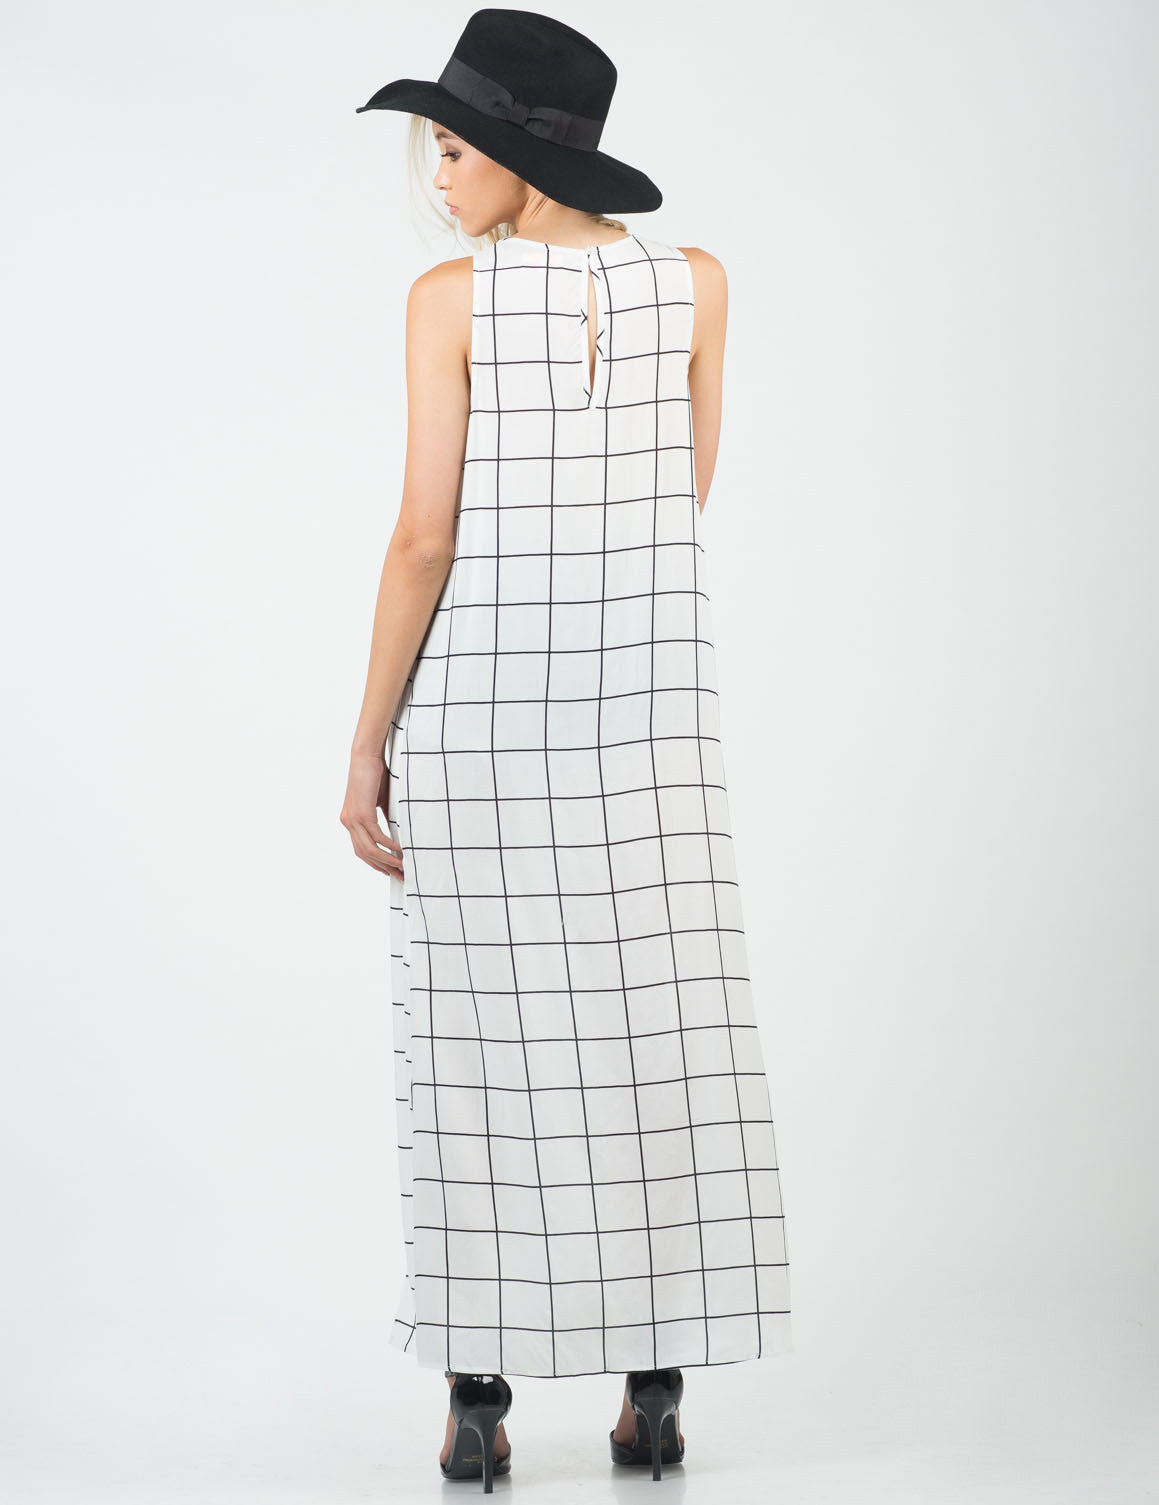 Back View of Gridline Shirt Dress